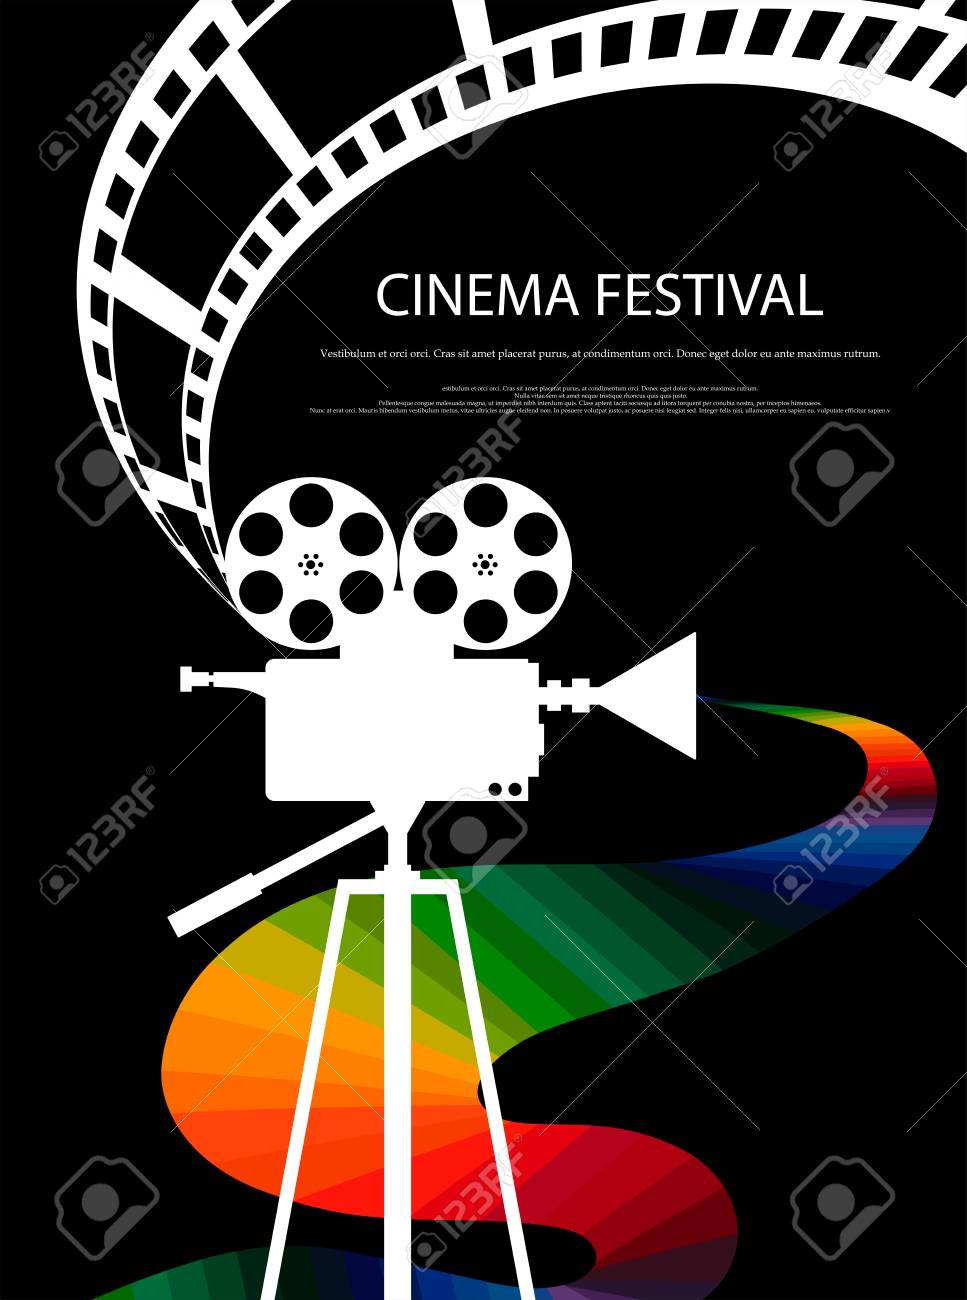 Movie And Film Abstract Modern Poster BackgroundRetro Cinema Festival Design Element Template